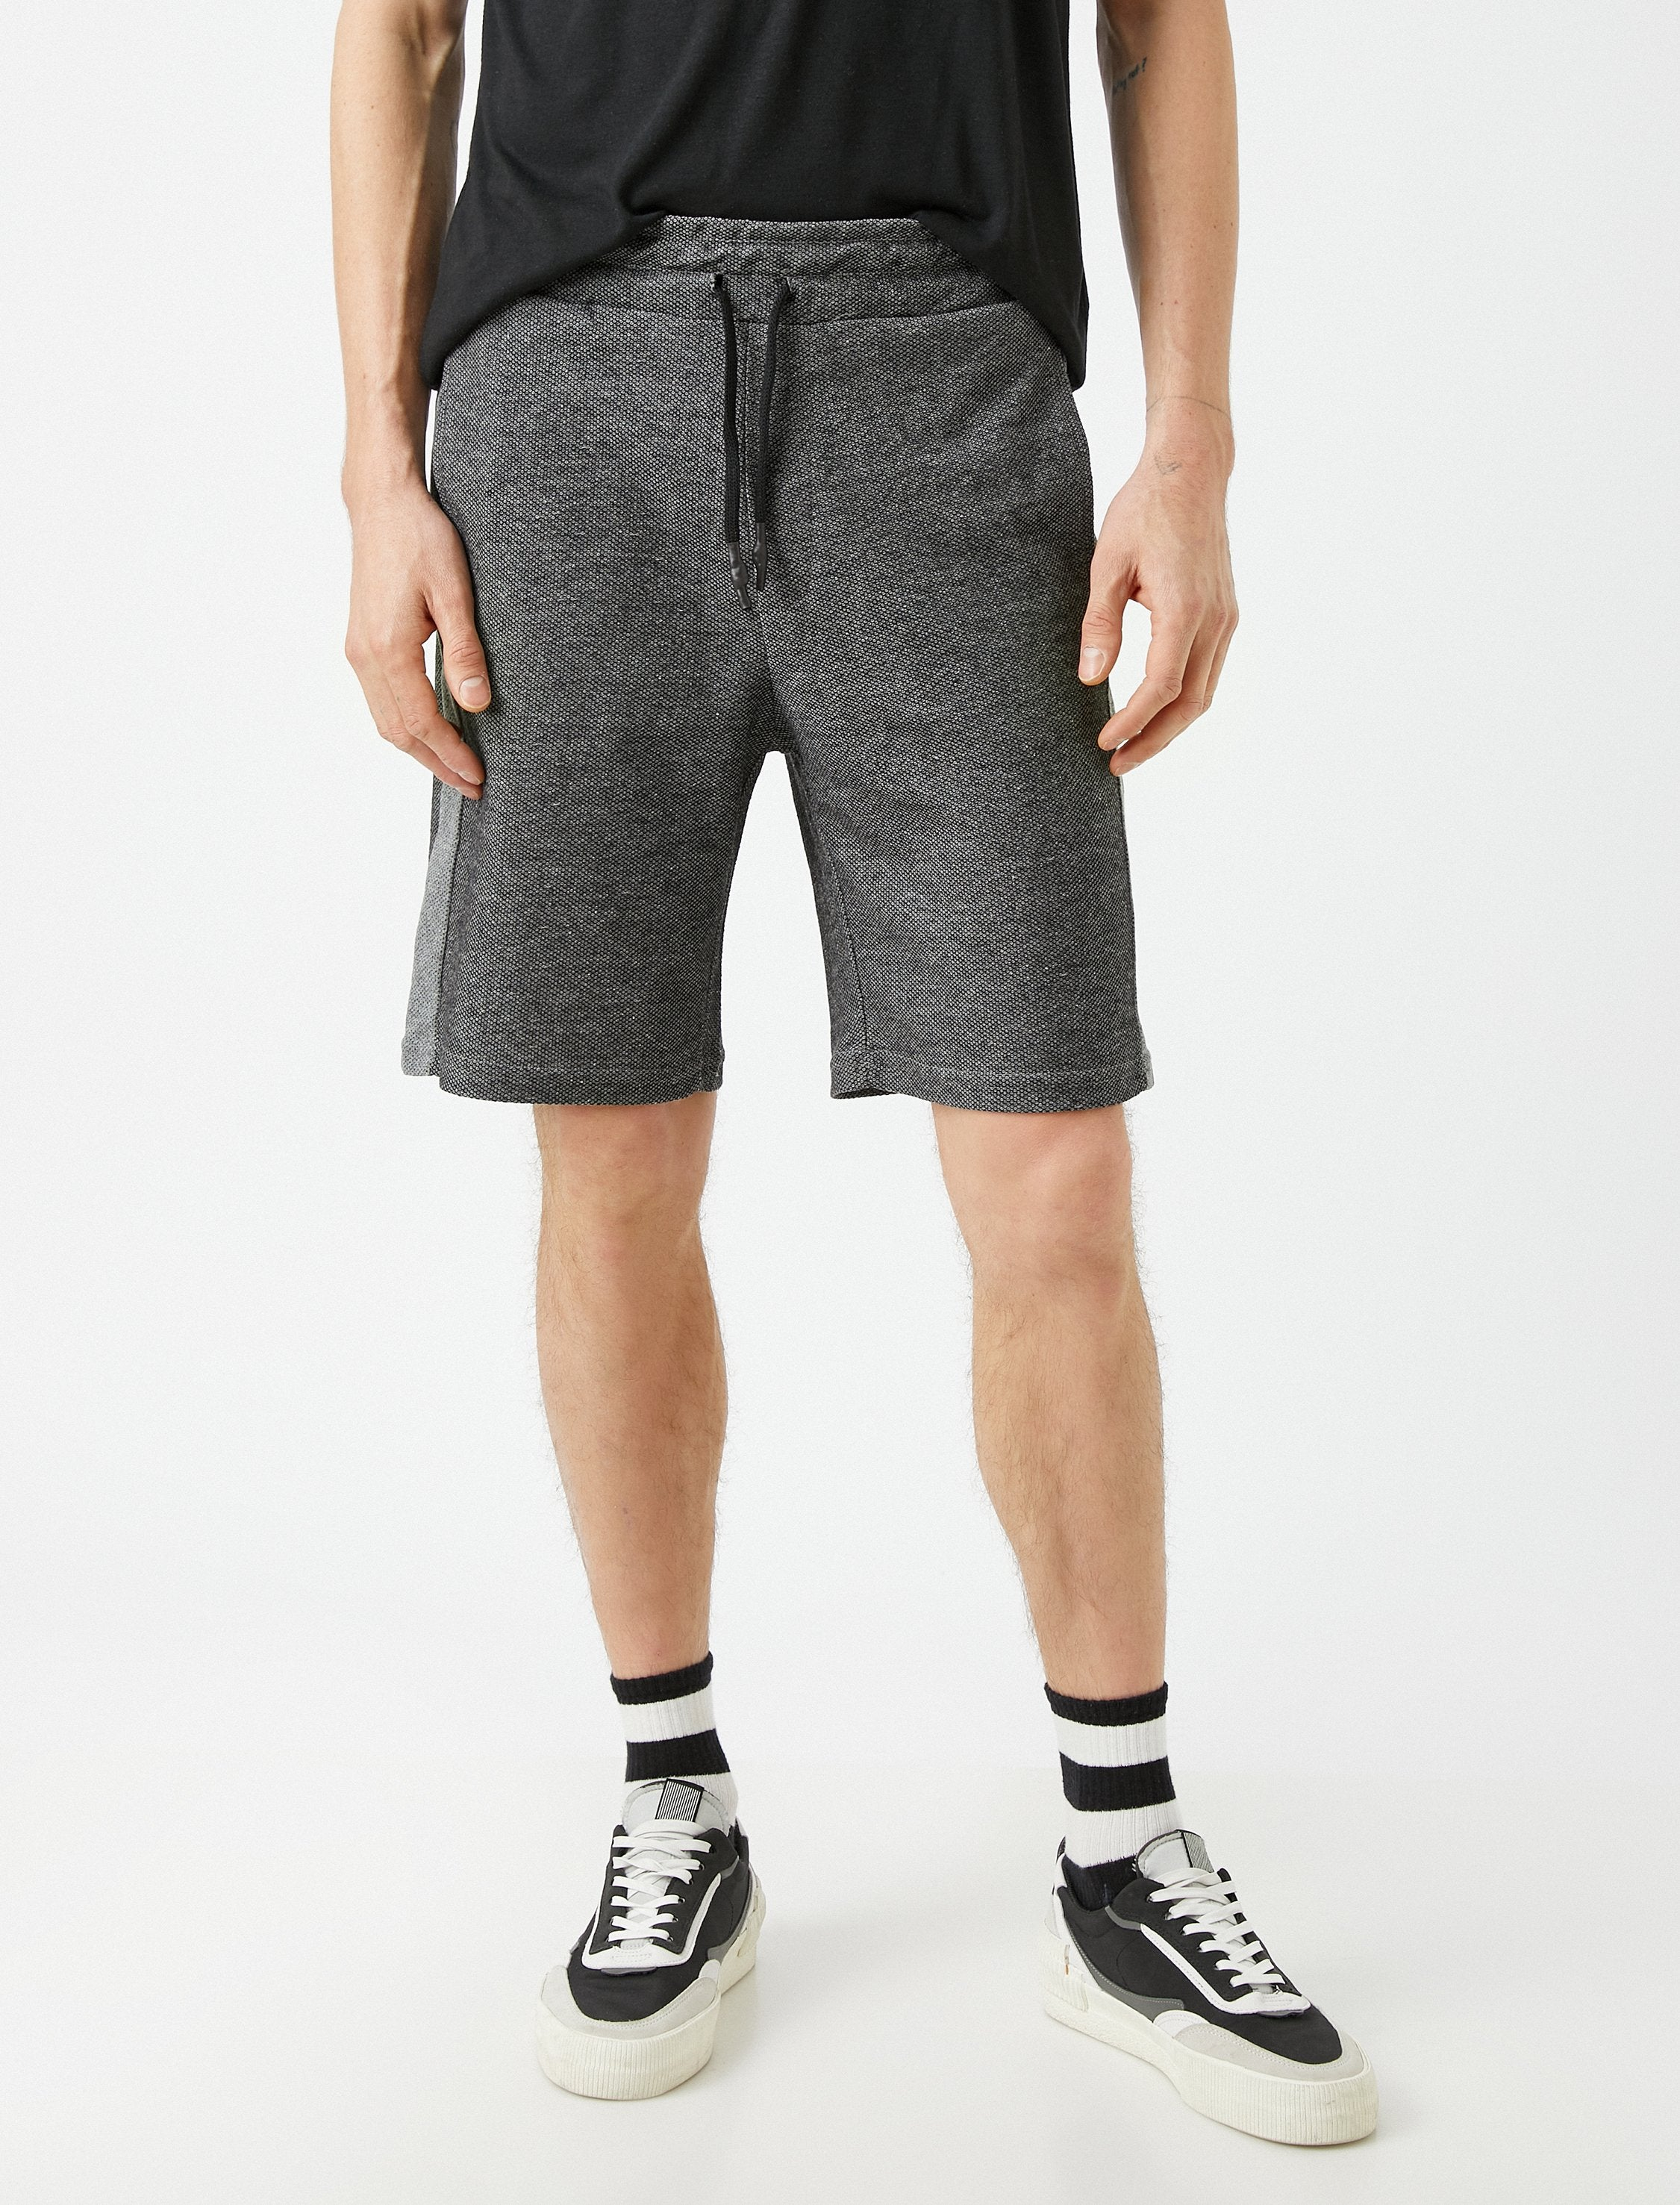 Sweat Shorts in Gray